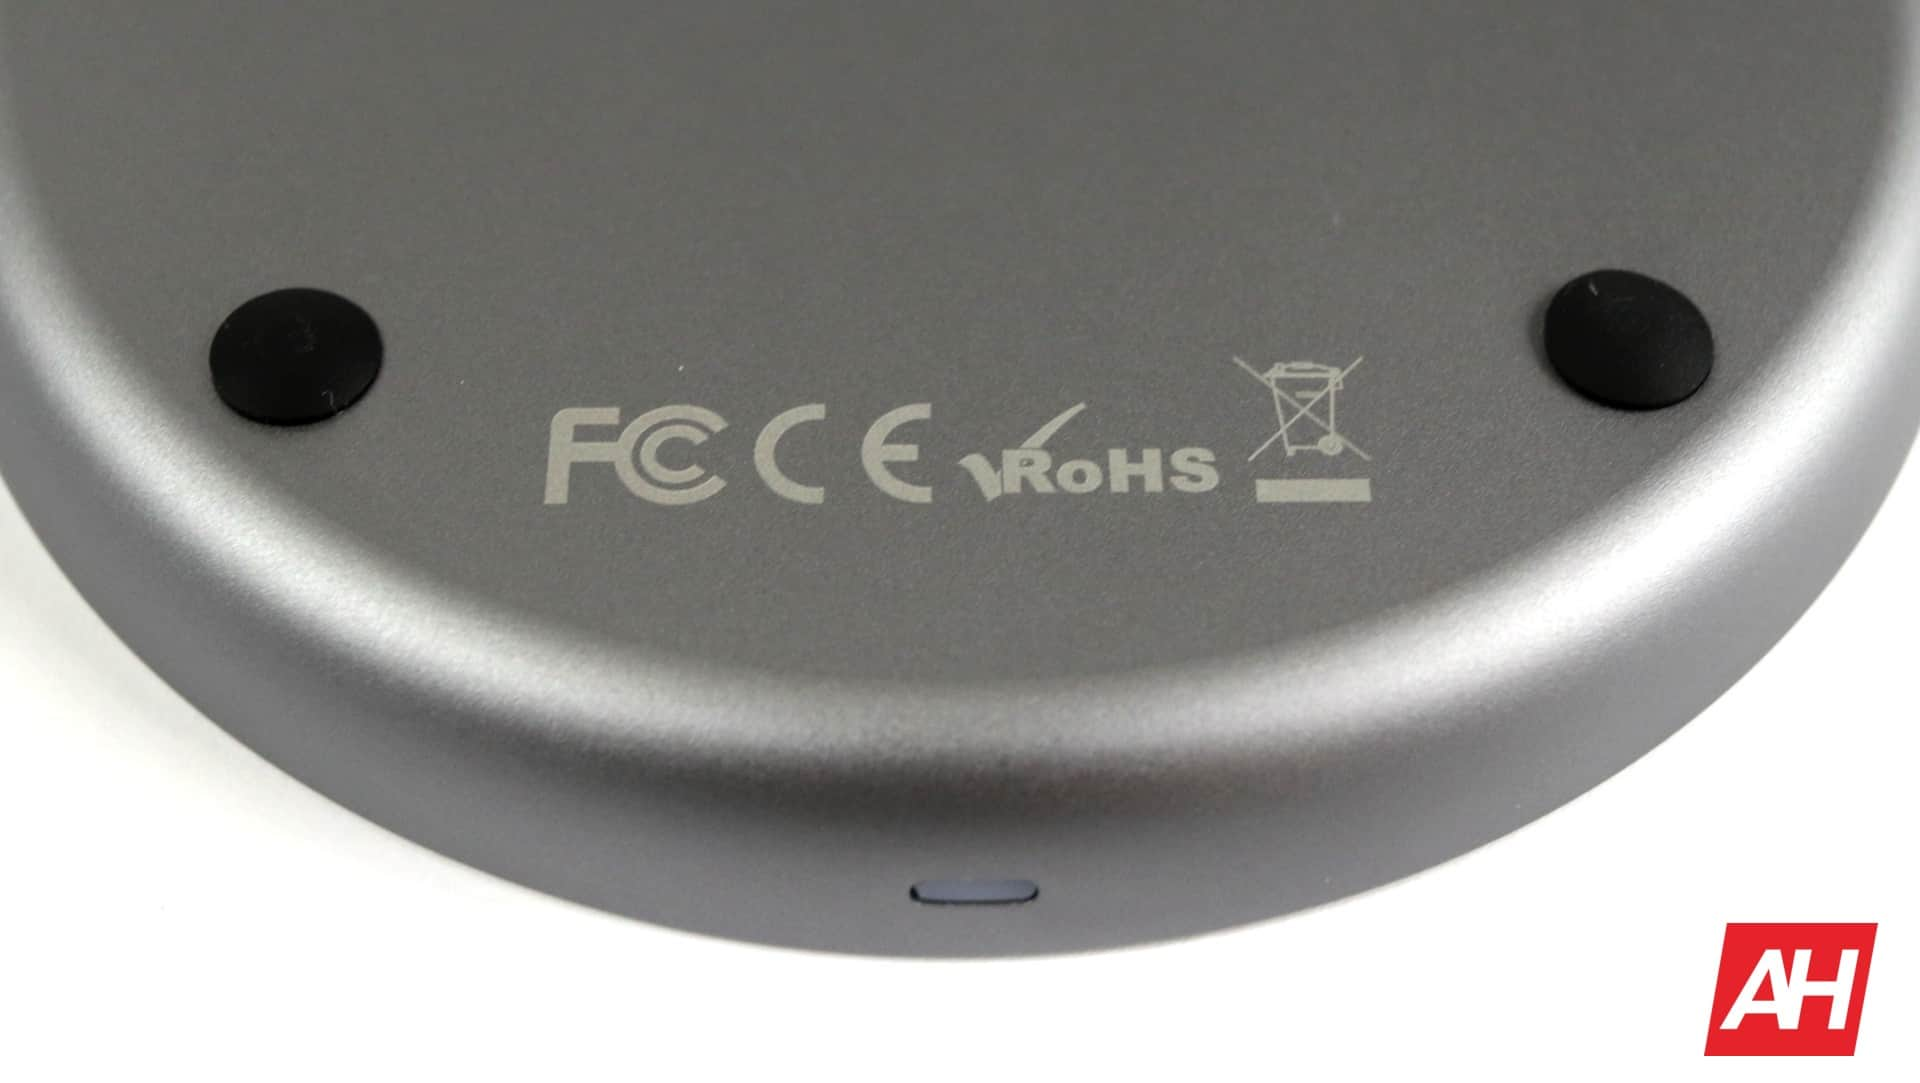 Satechi Wireless Charger V2 Review 09 AH